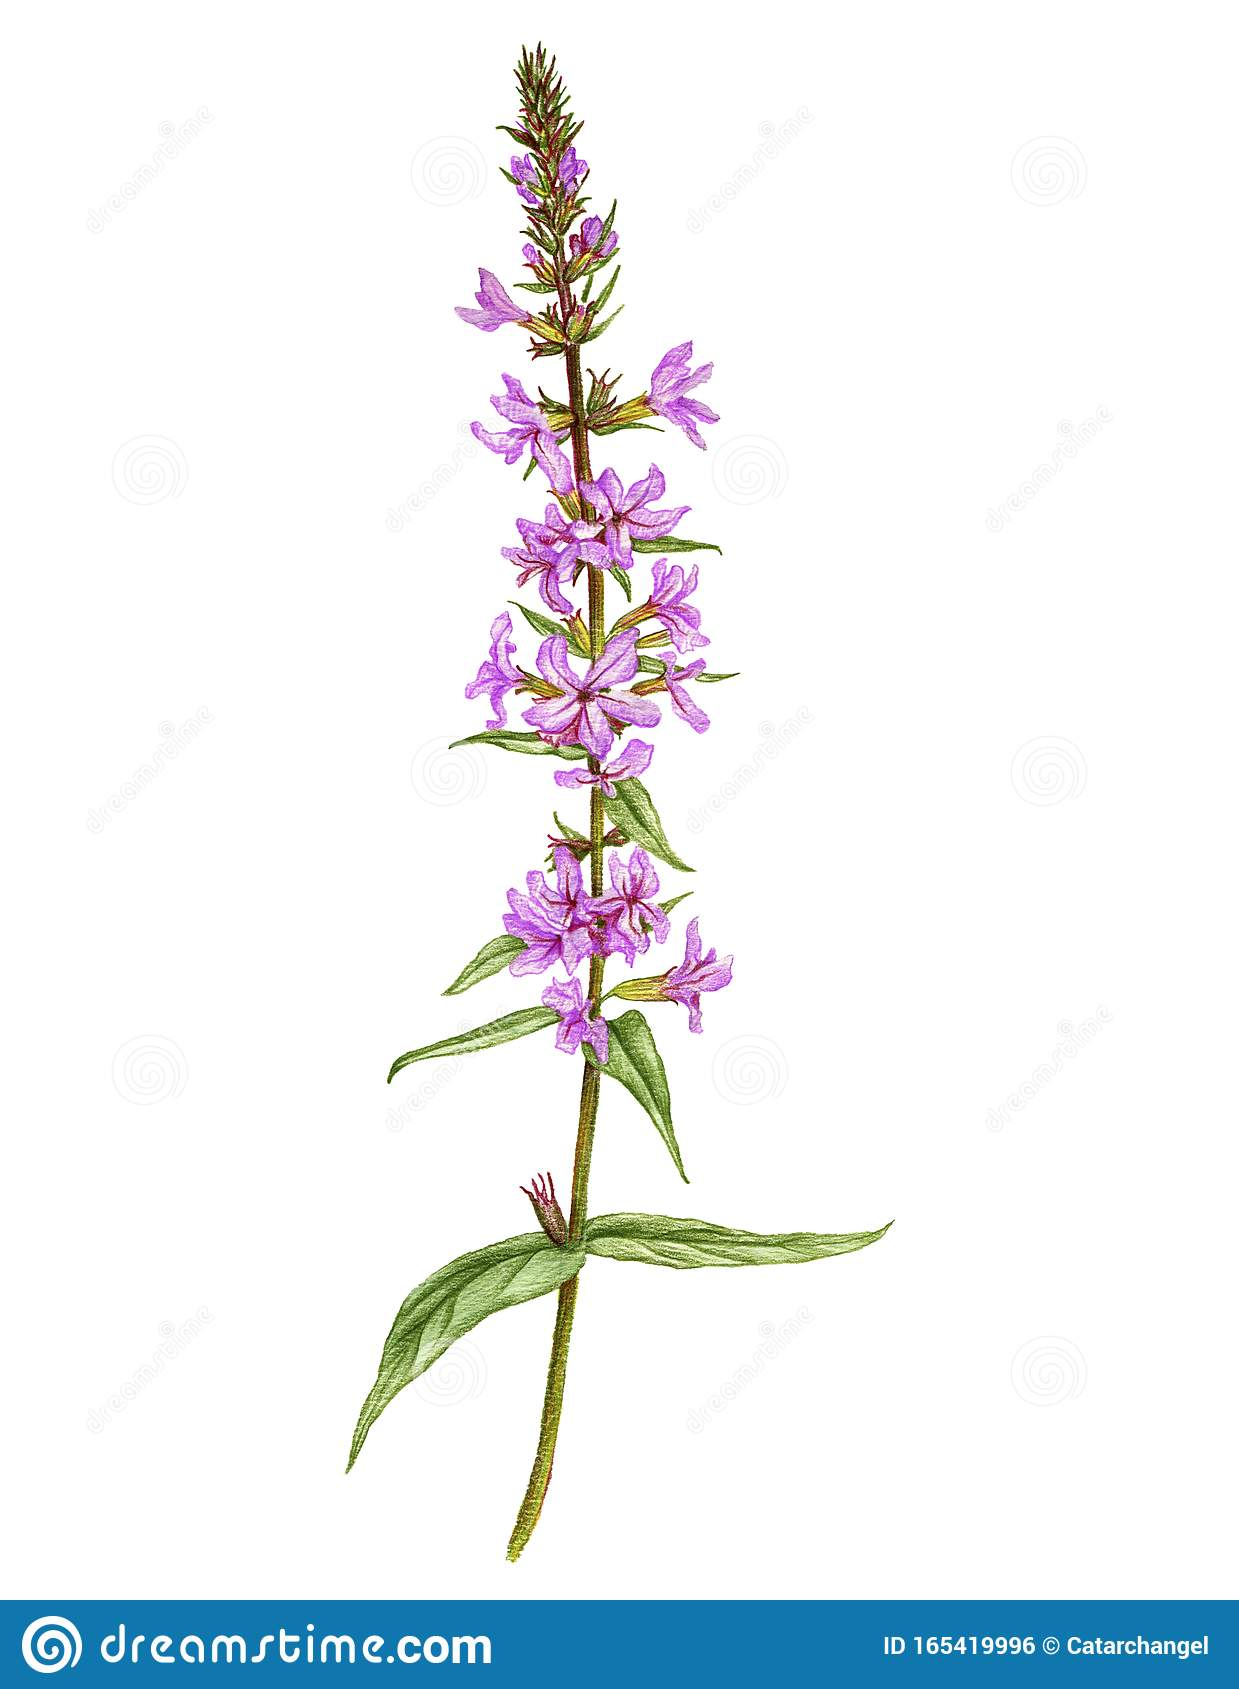 Purple Flower Drawing Stock Illustrations 49 494 Purple Flower Drawing Stock Illustrations Vectors Clipart Dreamstime